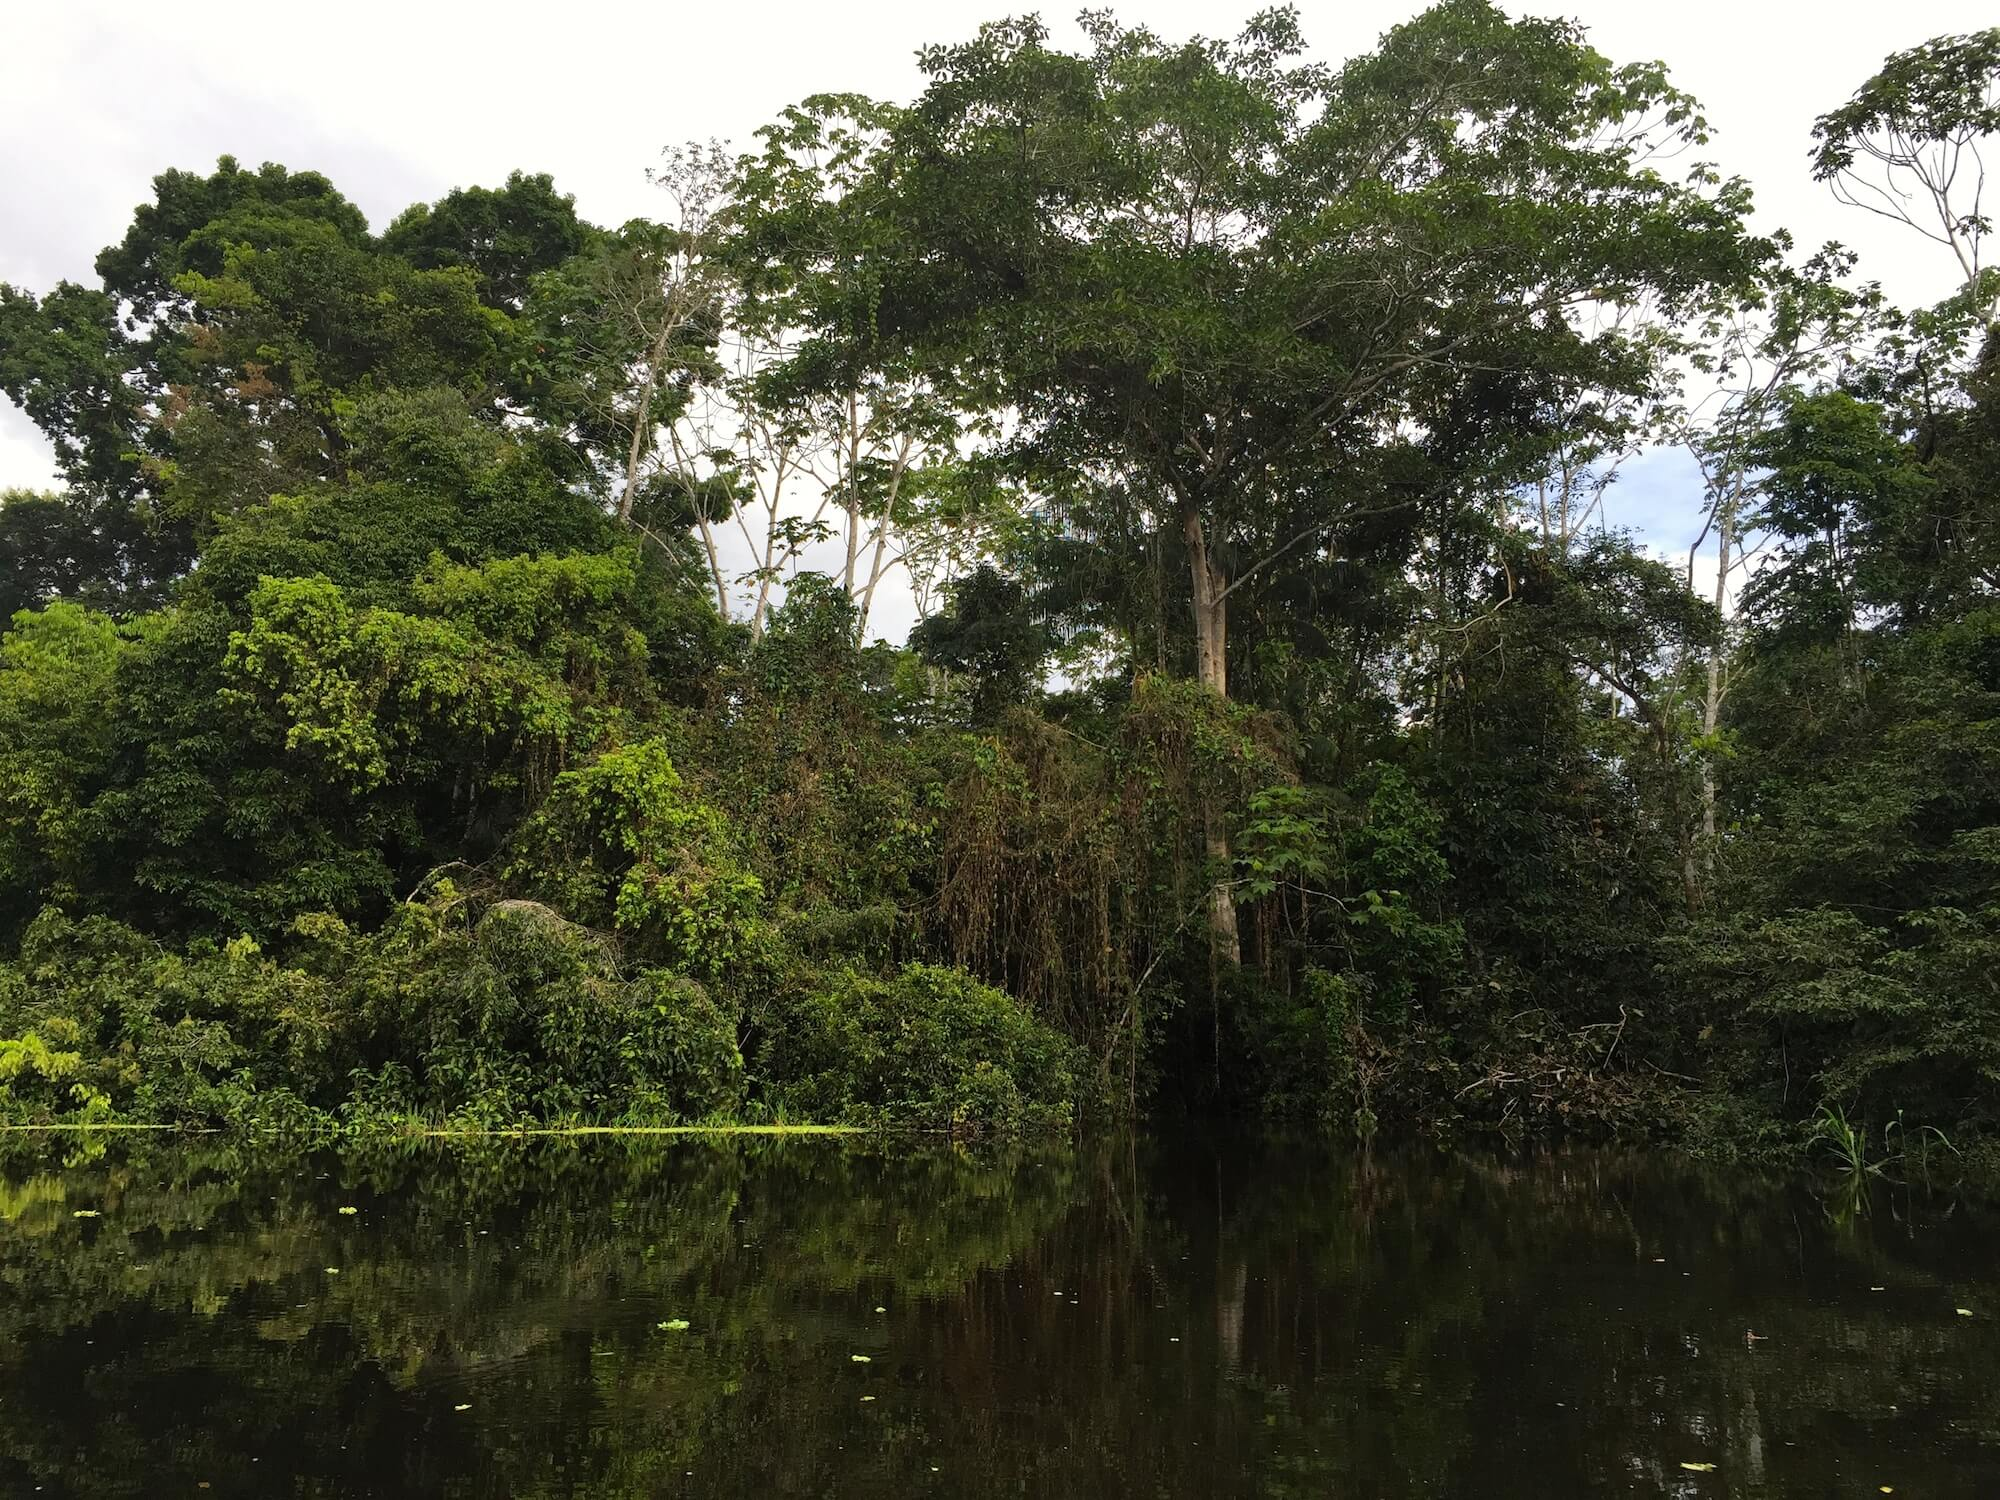 The Amazon jungle is filled with superfoods and other plants with medicinal properties